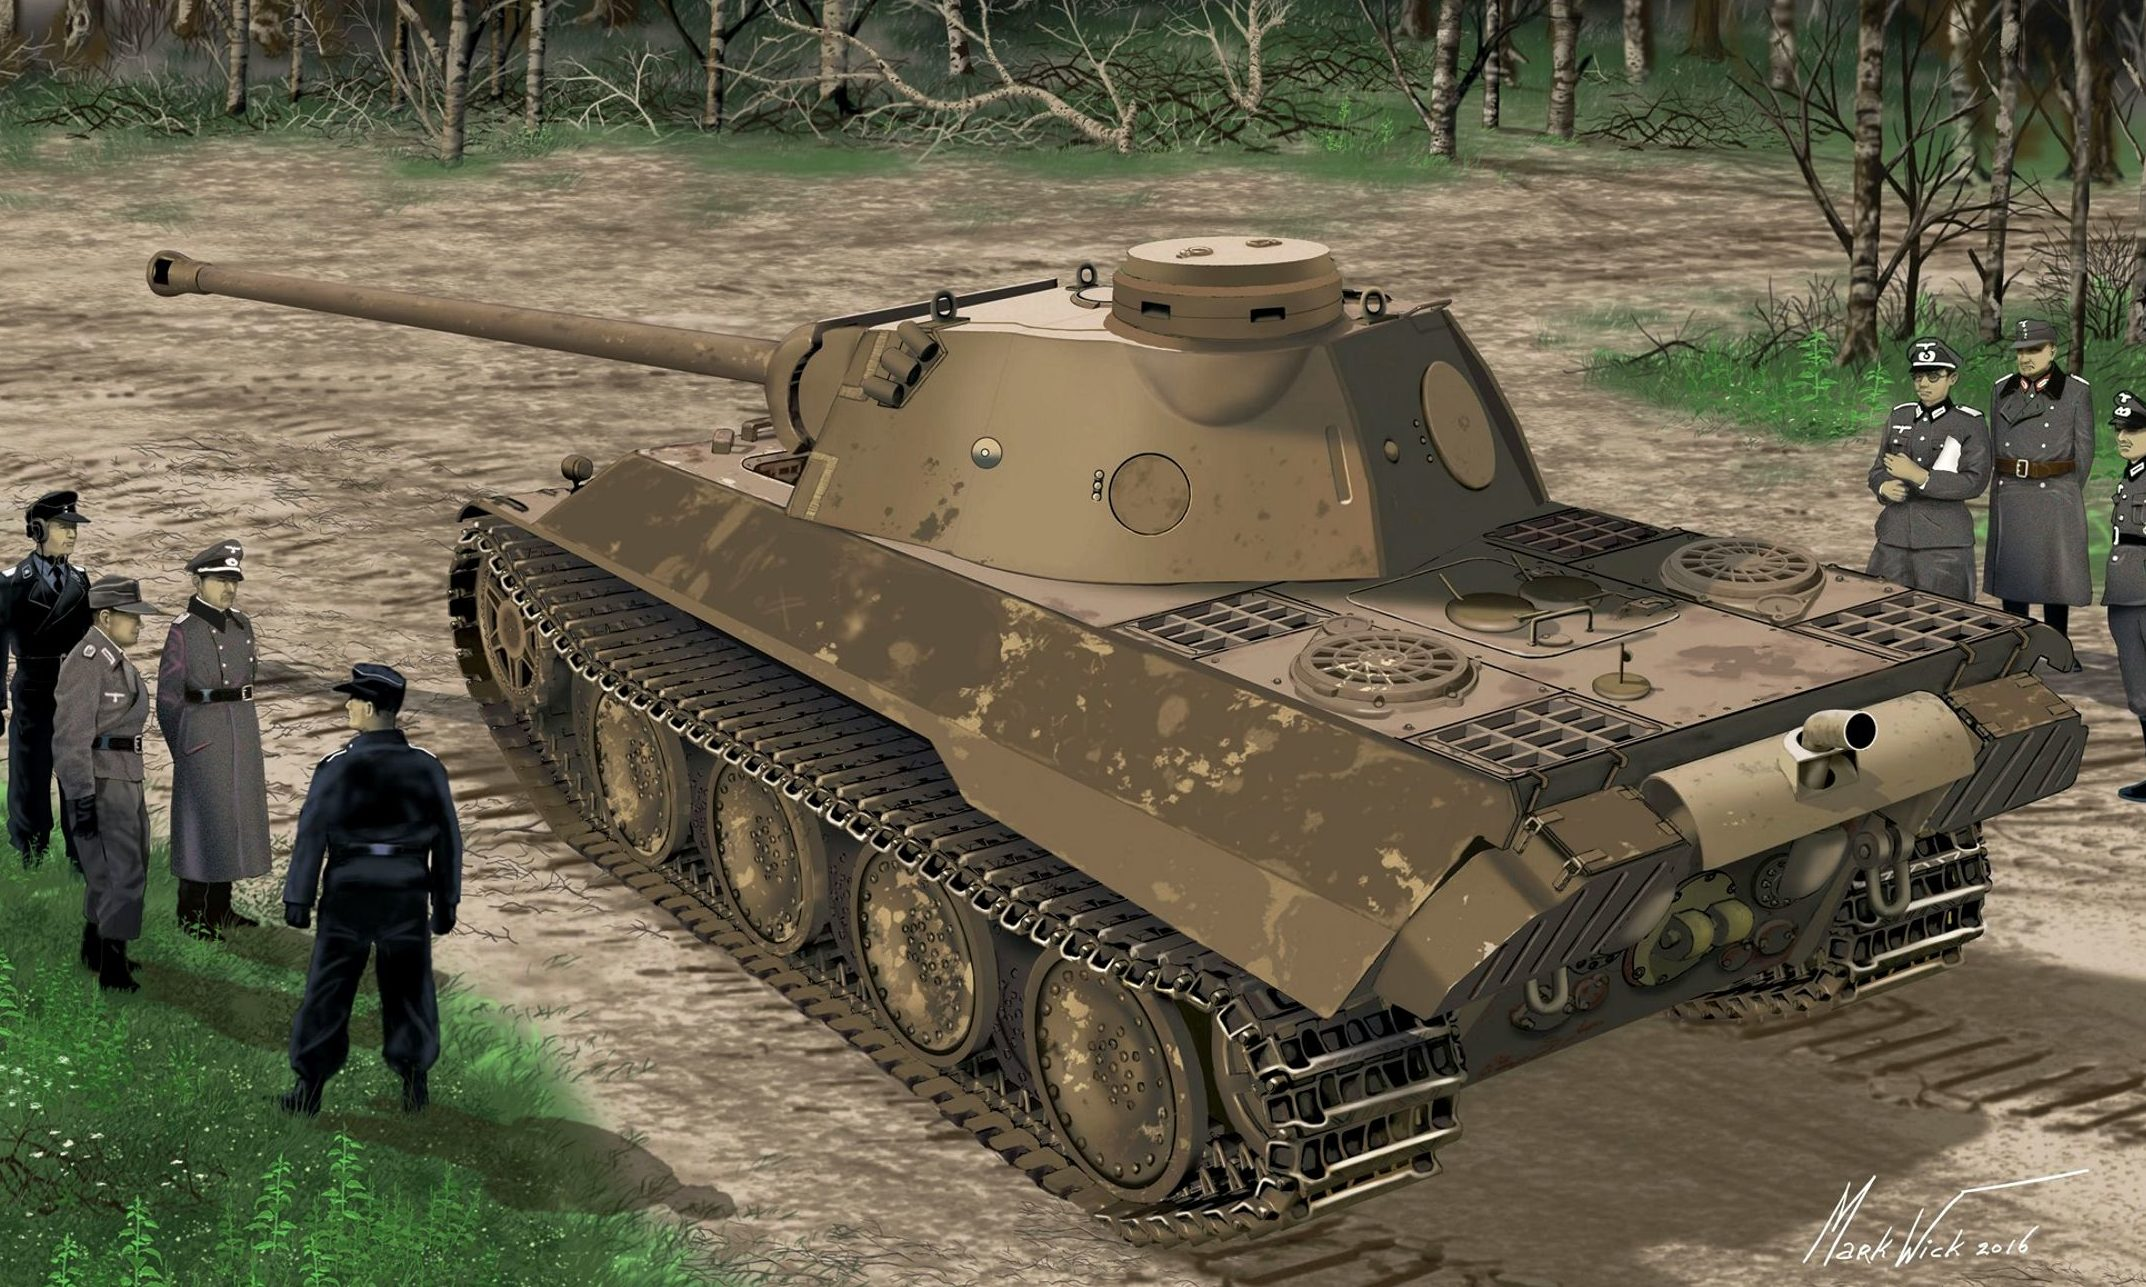 Markwick Michael. Танк Panther Ausf. D.